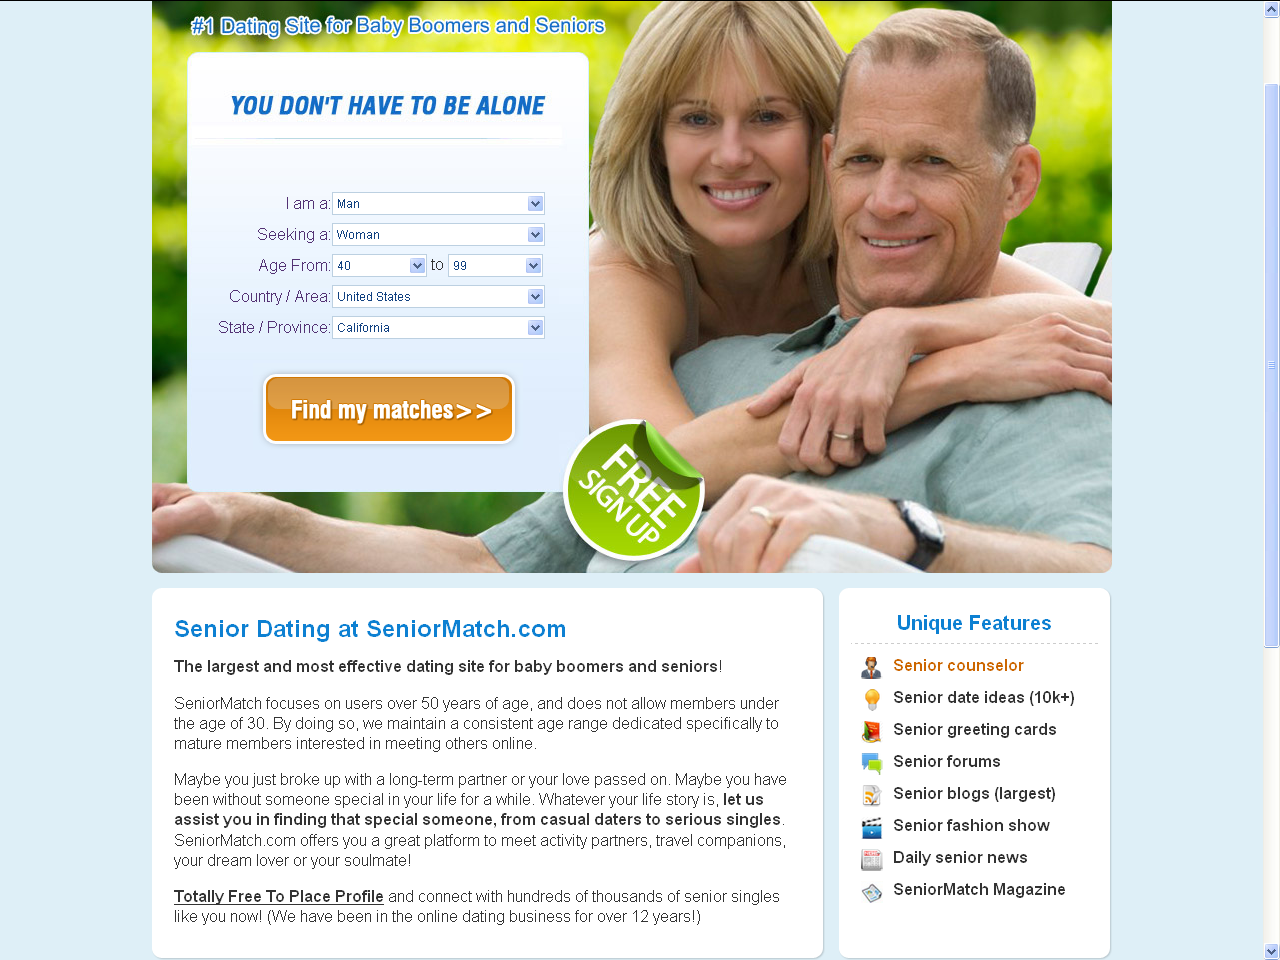 What sites is dating for seniors linked with